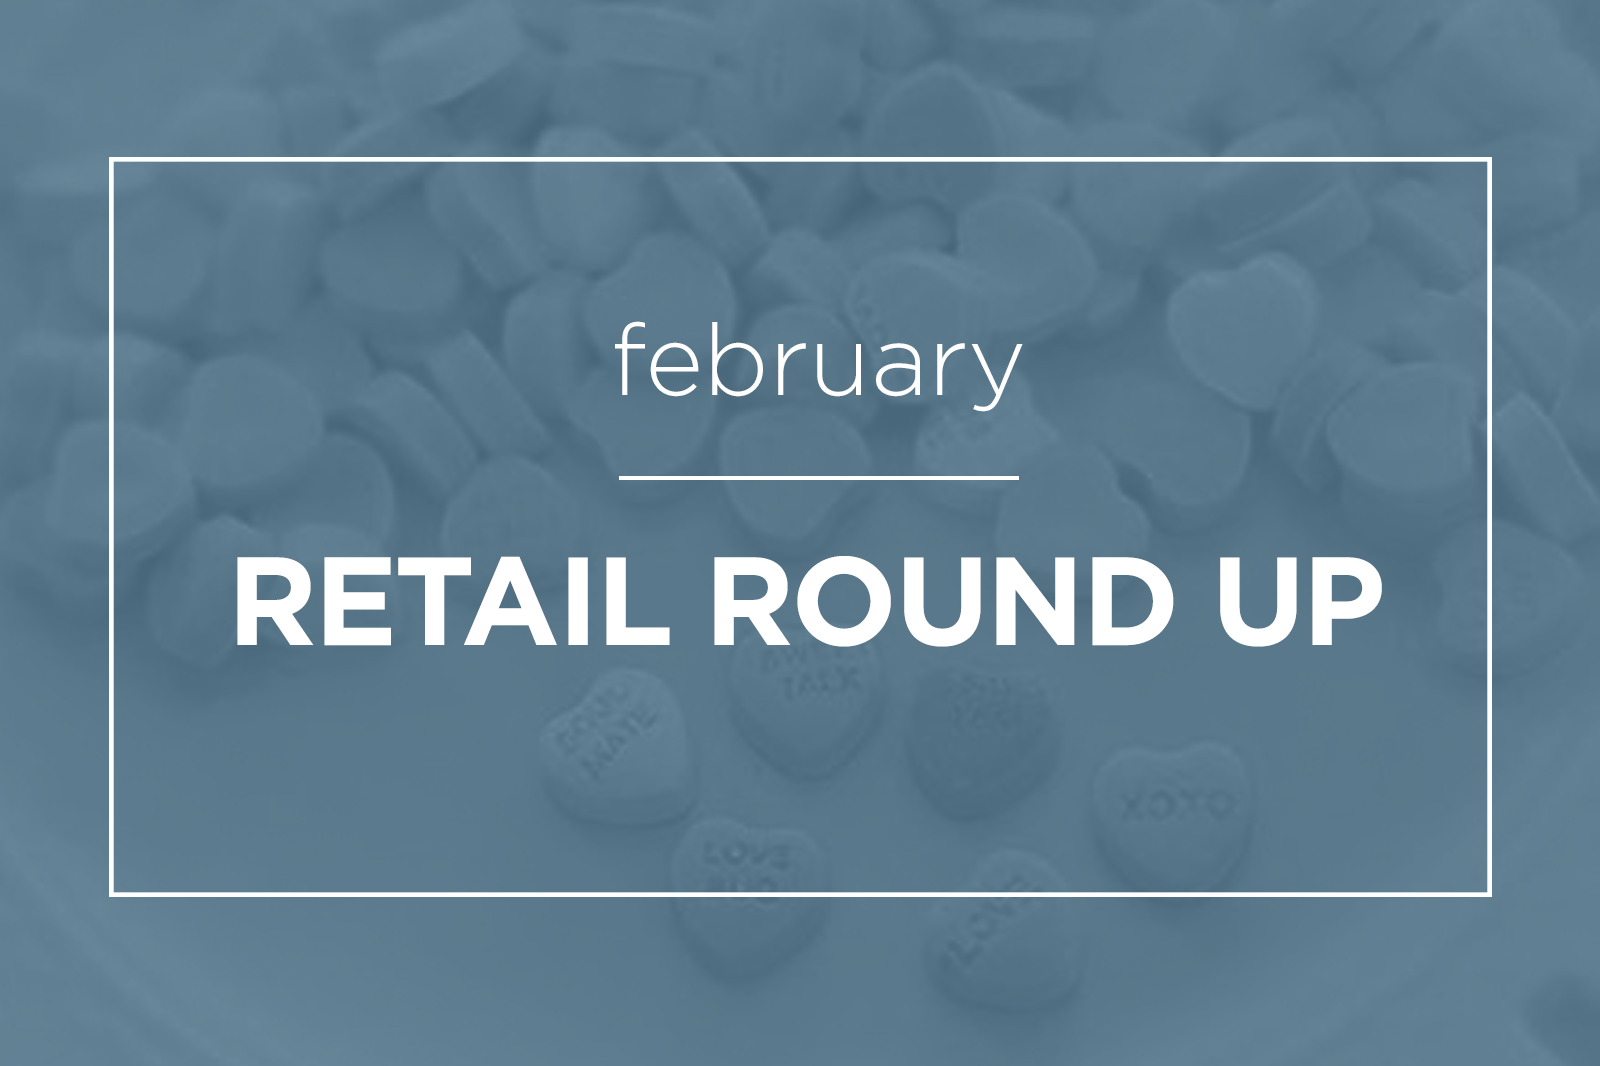 february-retail-round-up-feat-final